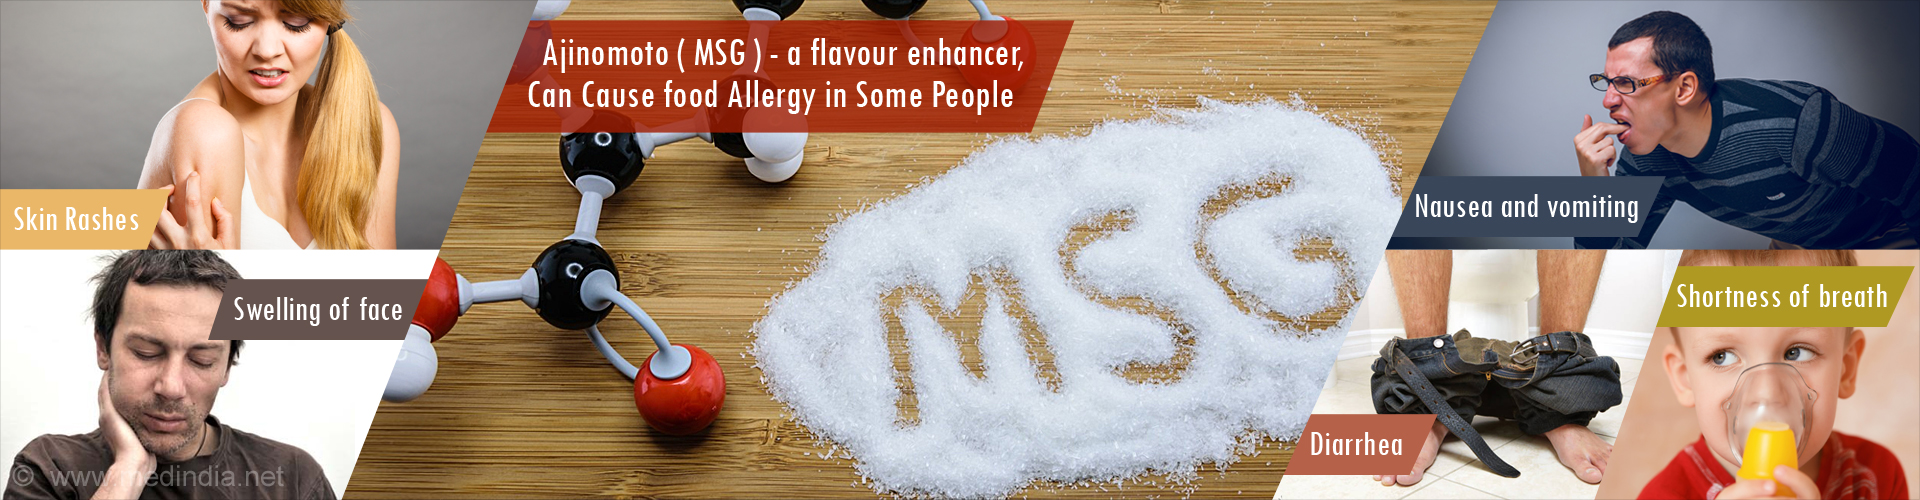 Monosodium Glutamate (MSG) Allergy